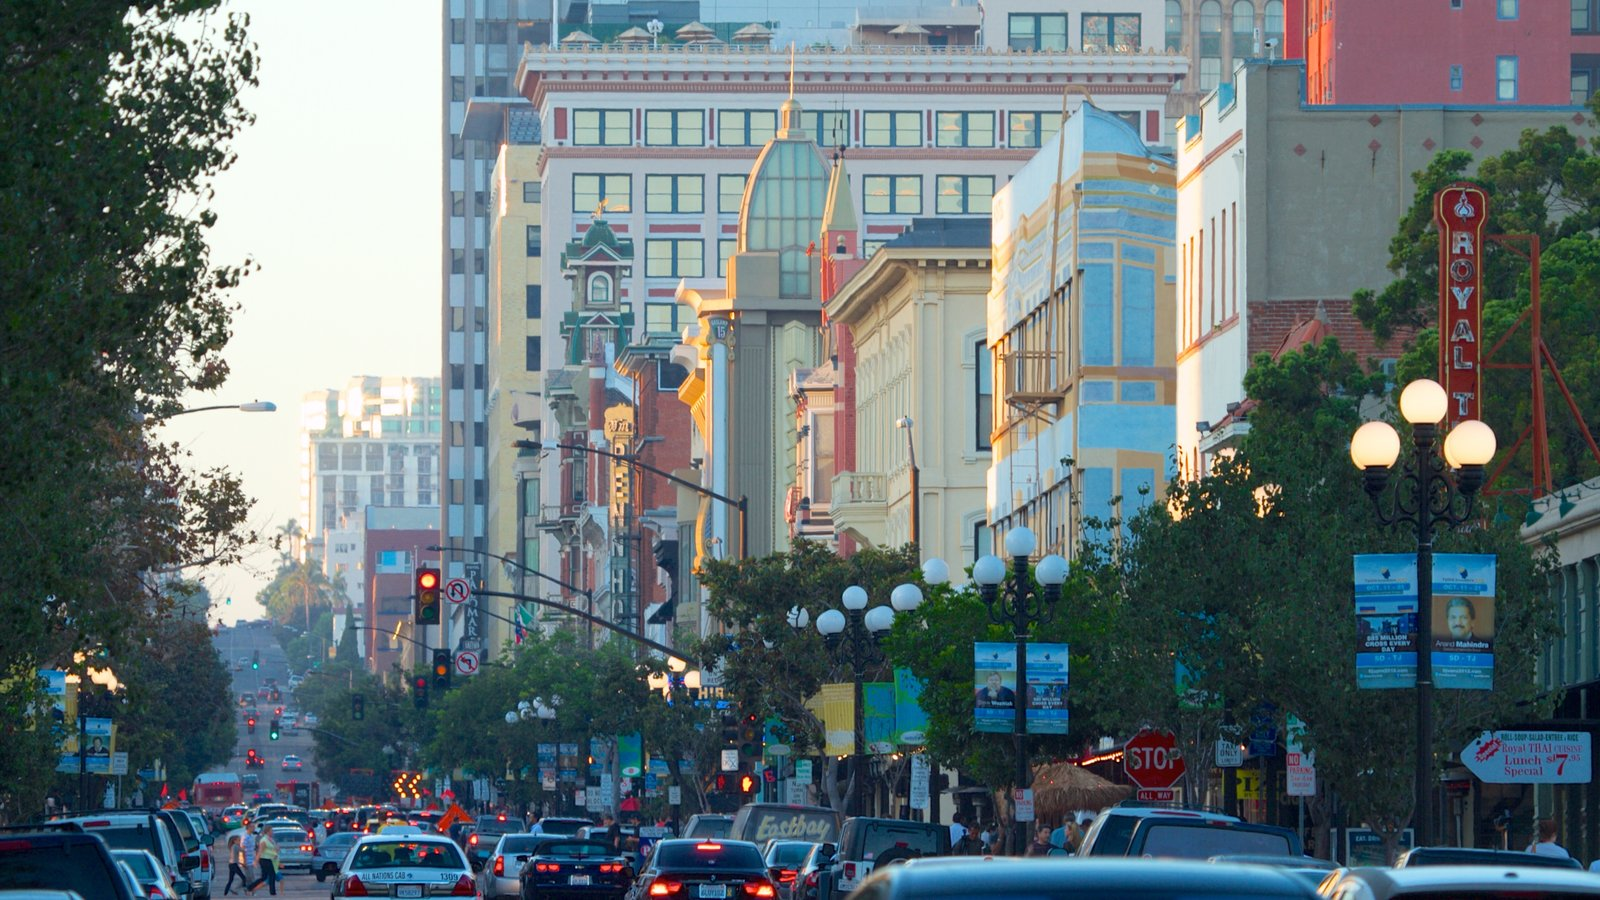 Gaslamp Quarter Which Includes Street Scenes And A City